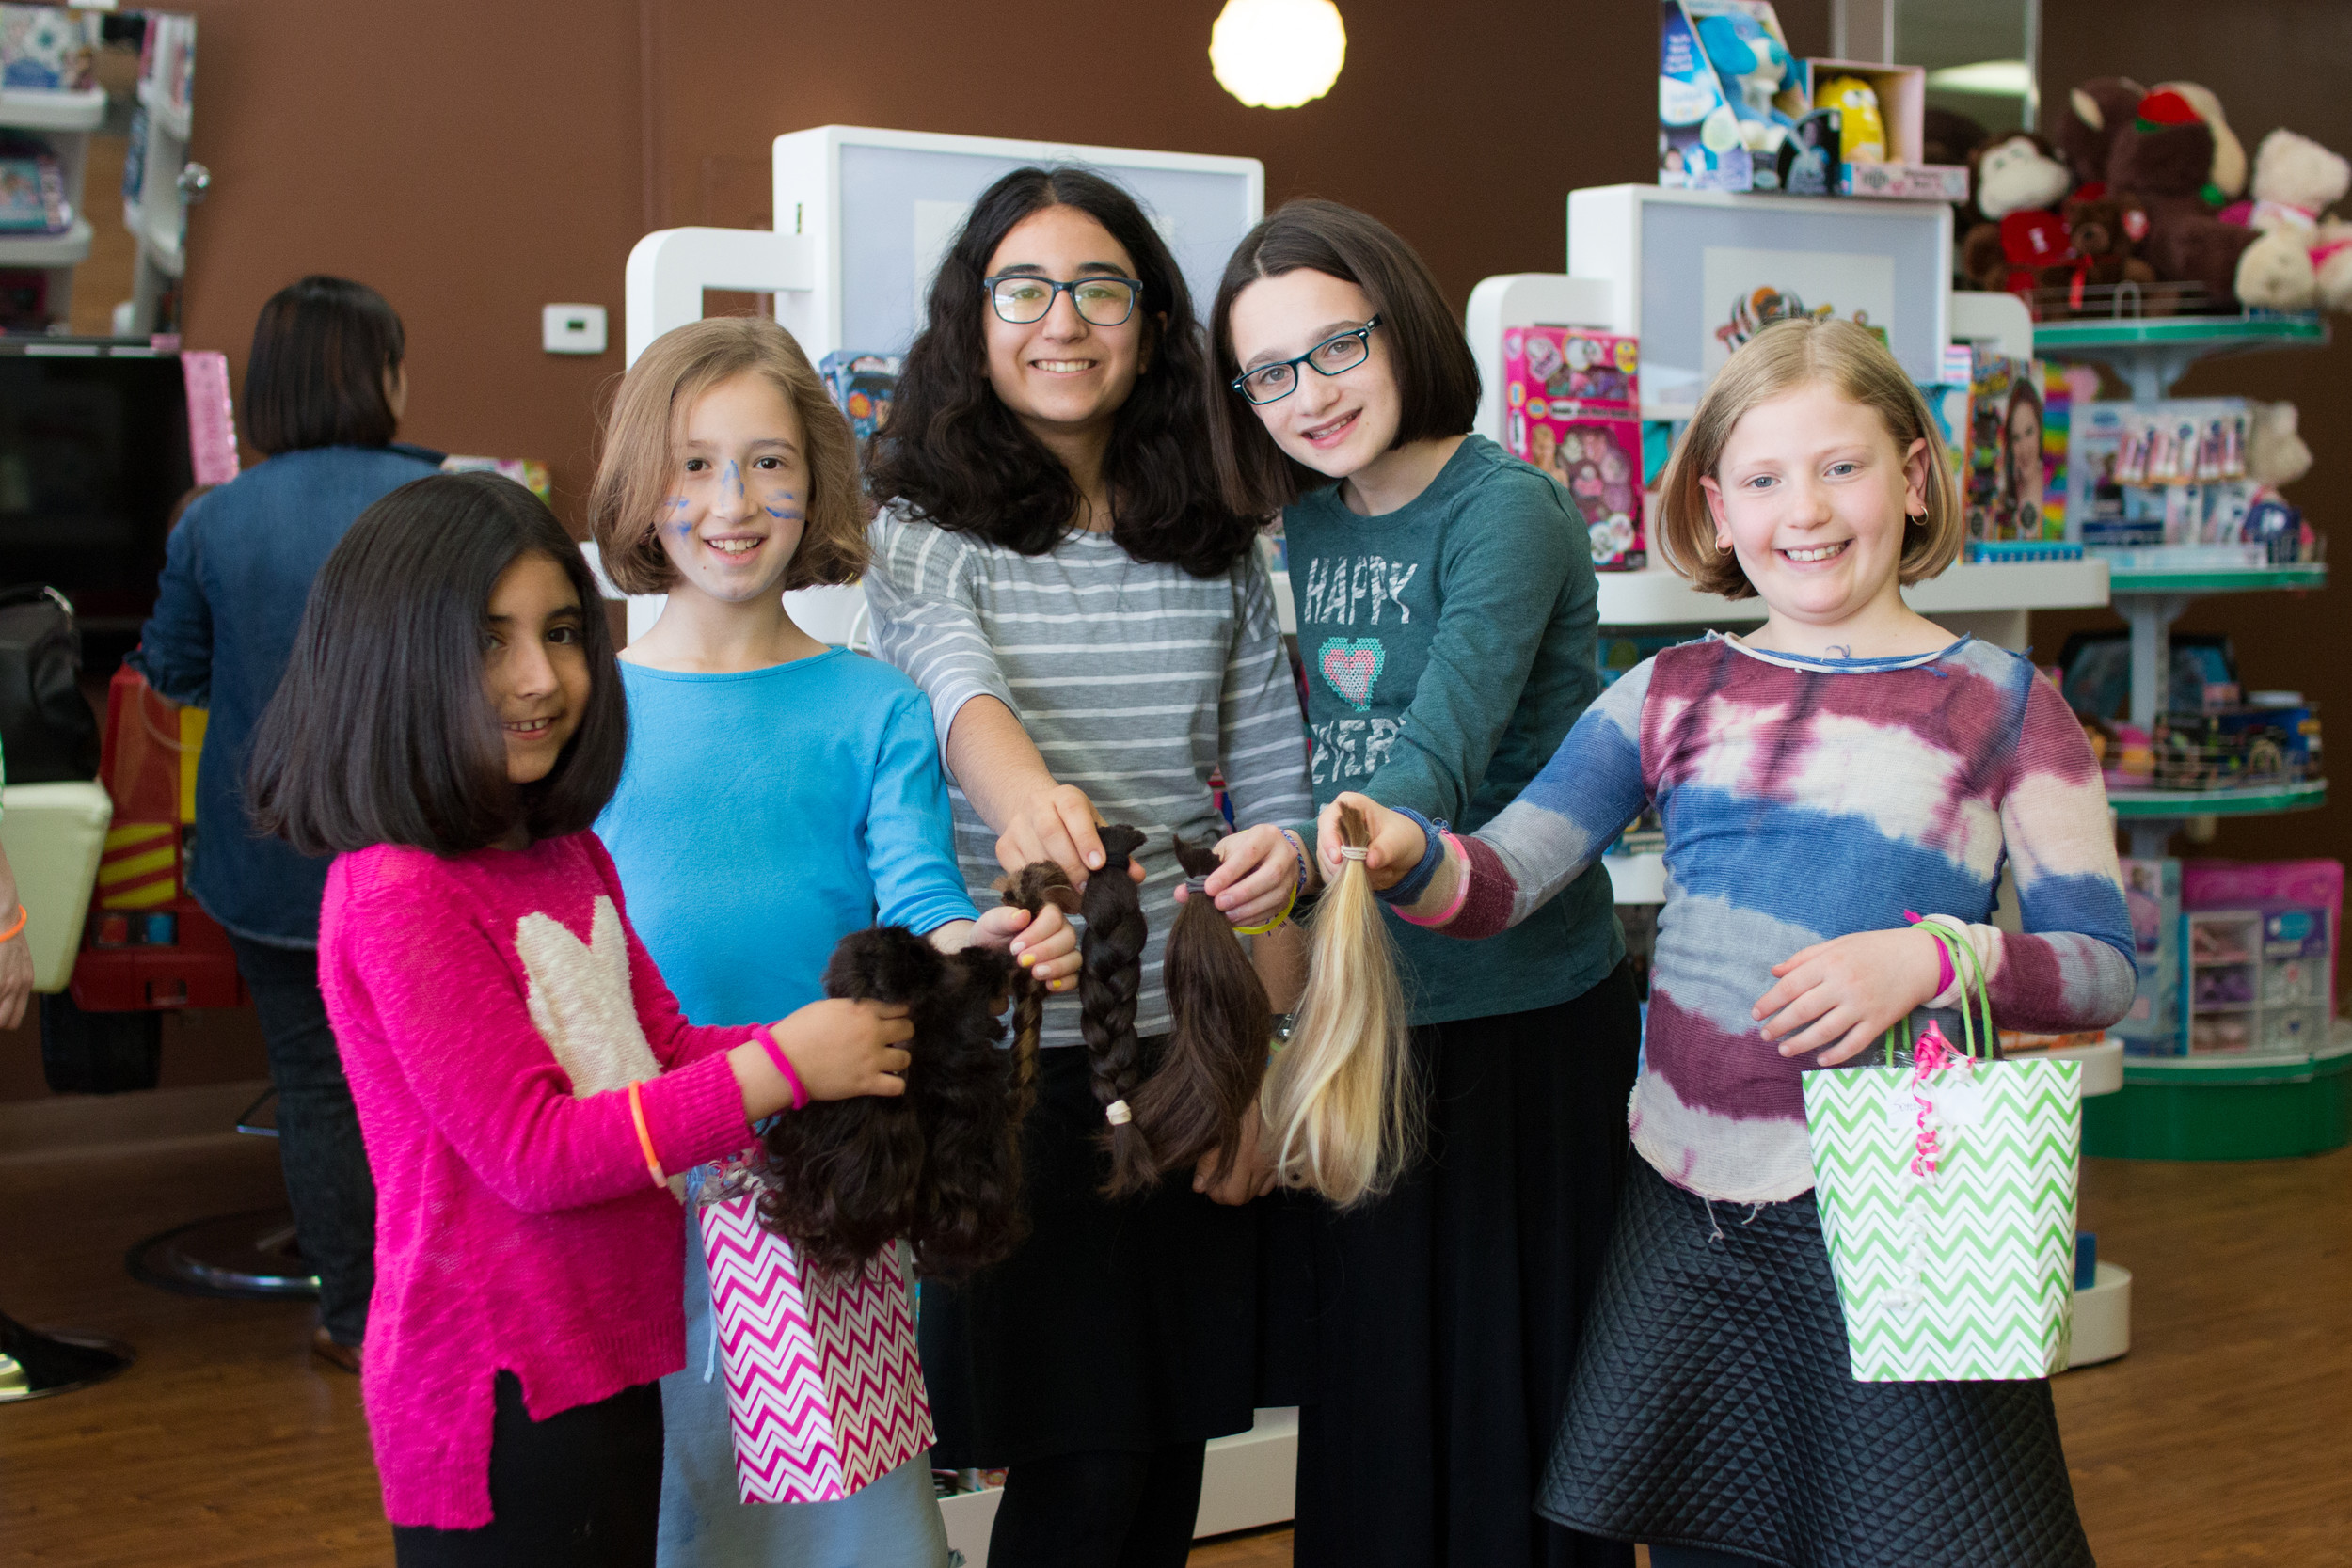 Students who donated hair to make wigs for children with cancer included, from left, Maya Goykadosh of Great Neck; Jasmine Nurieli of West Hempstead; Hannah Goykadosh of Greak Neck; Neira Rosenbaum of West Hempstead; and Sonia Kaynan of Jamaica Estates.